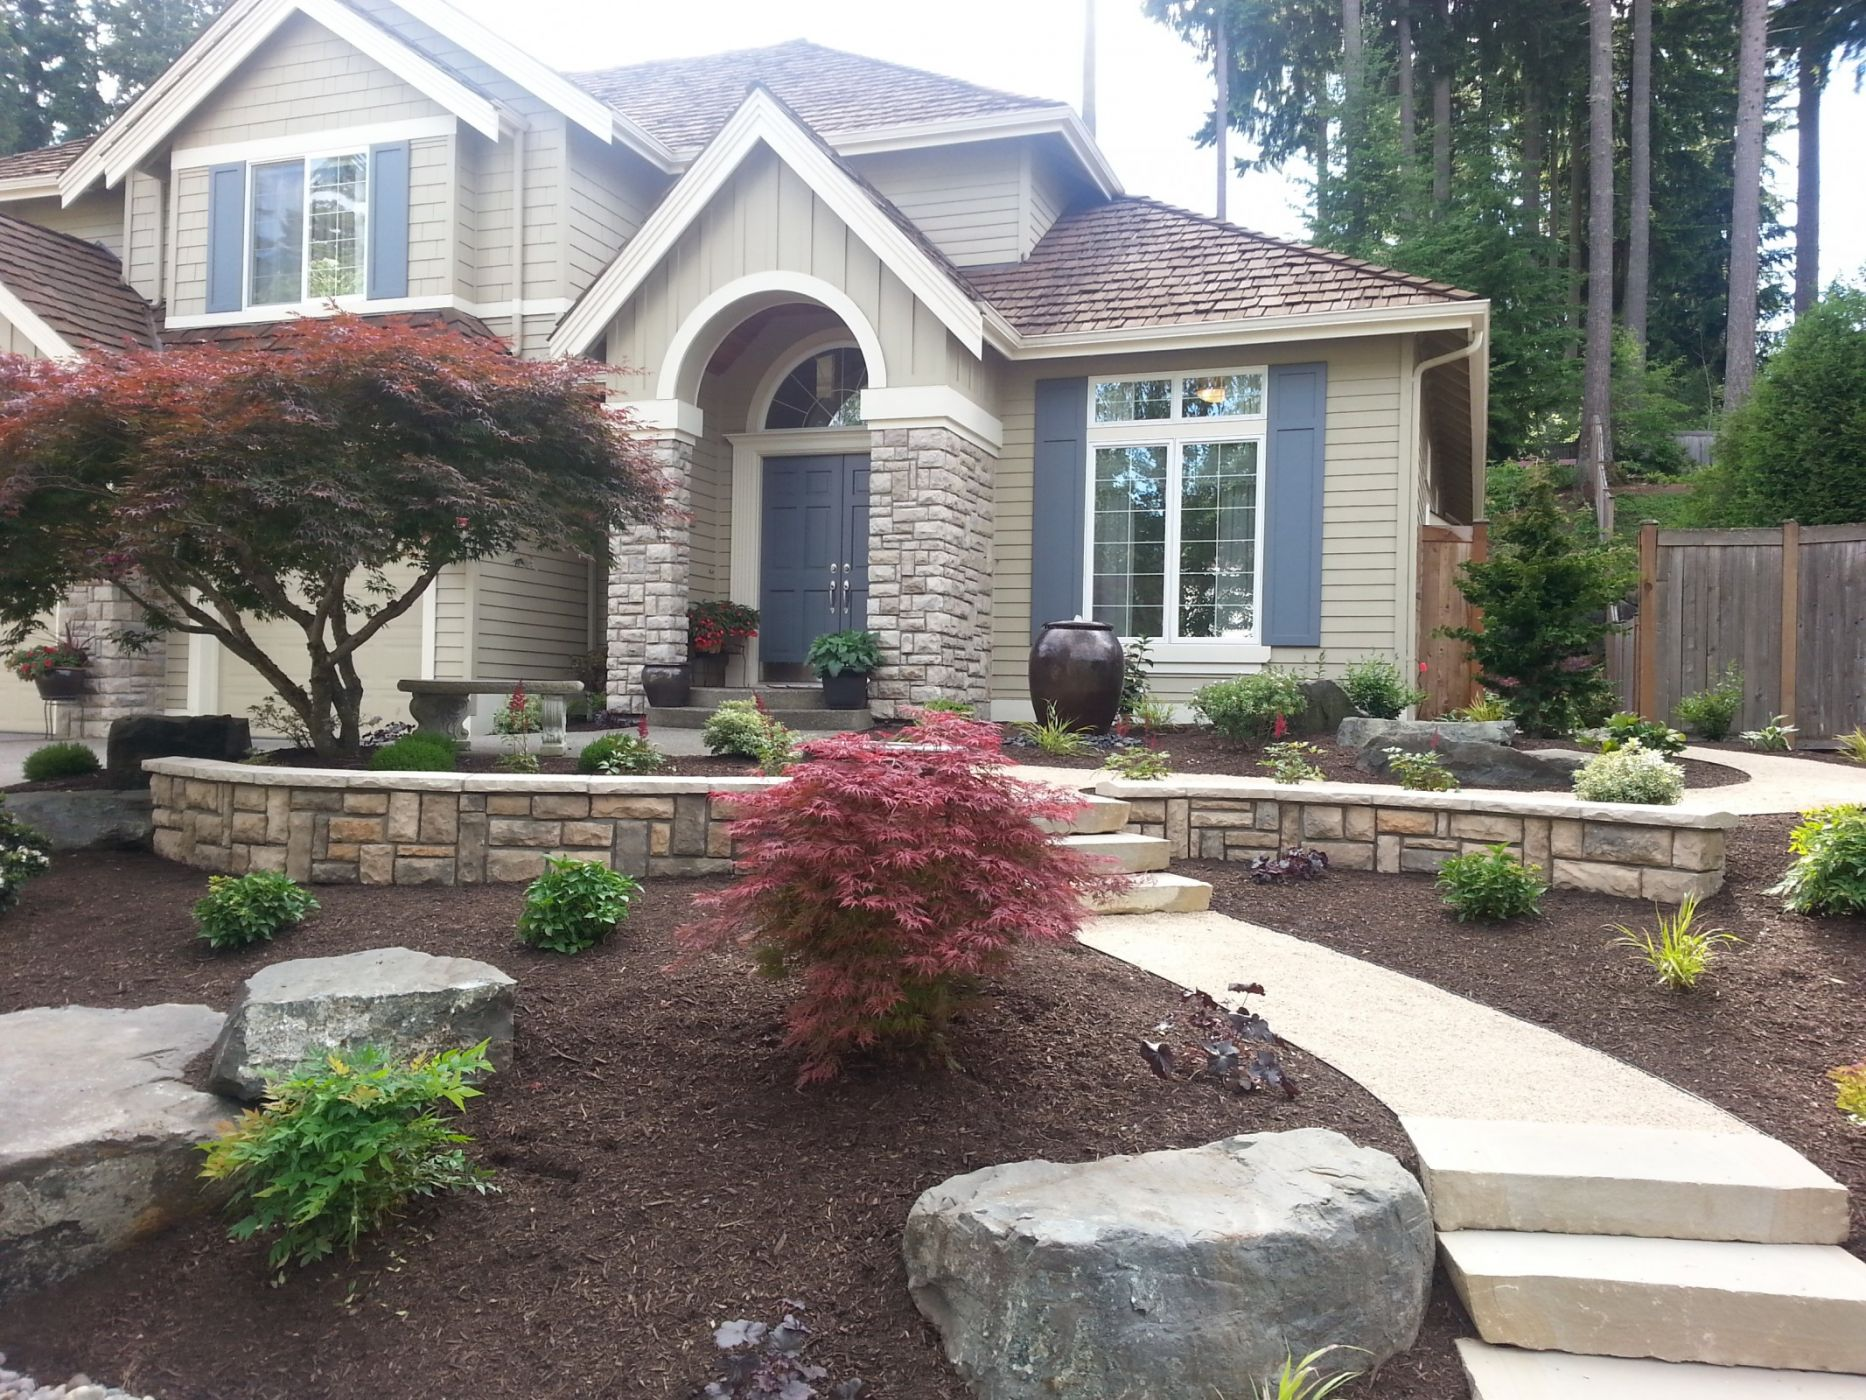 Janika landscaping ideas front yard illinois here for Front yard landscaping